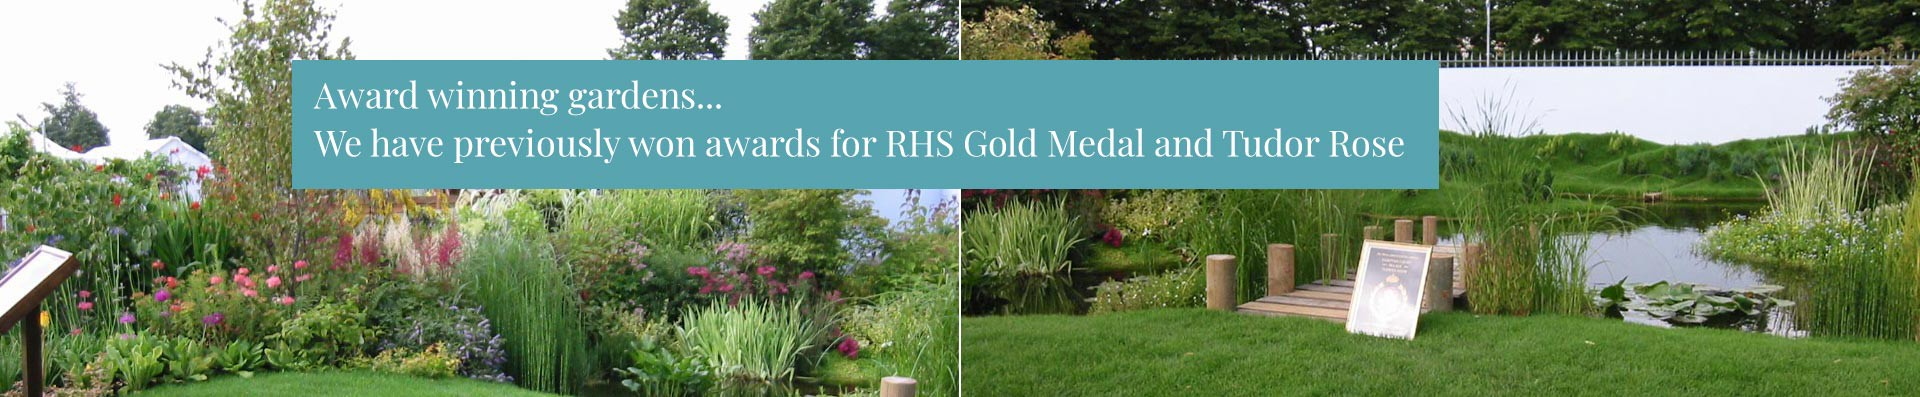 Award winning gardens - We have previously won awards for RHS Gold Medal and Tudor Rose